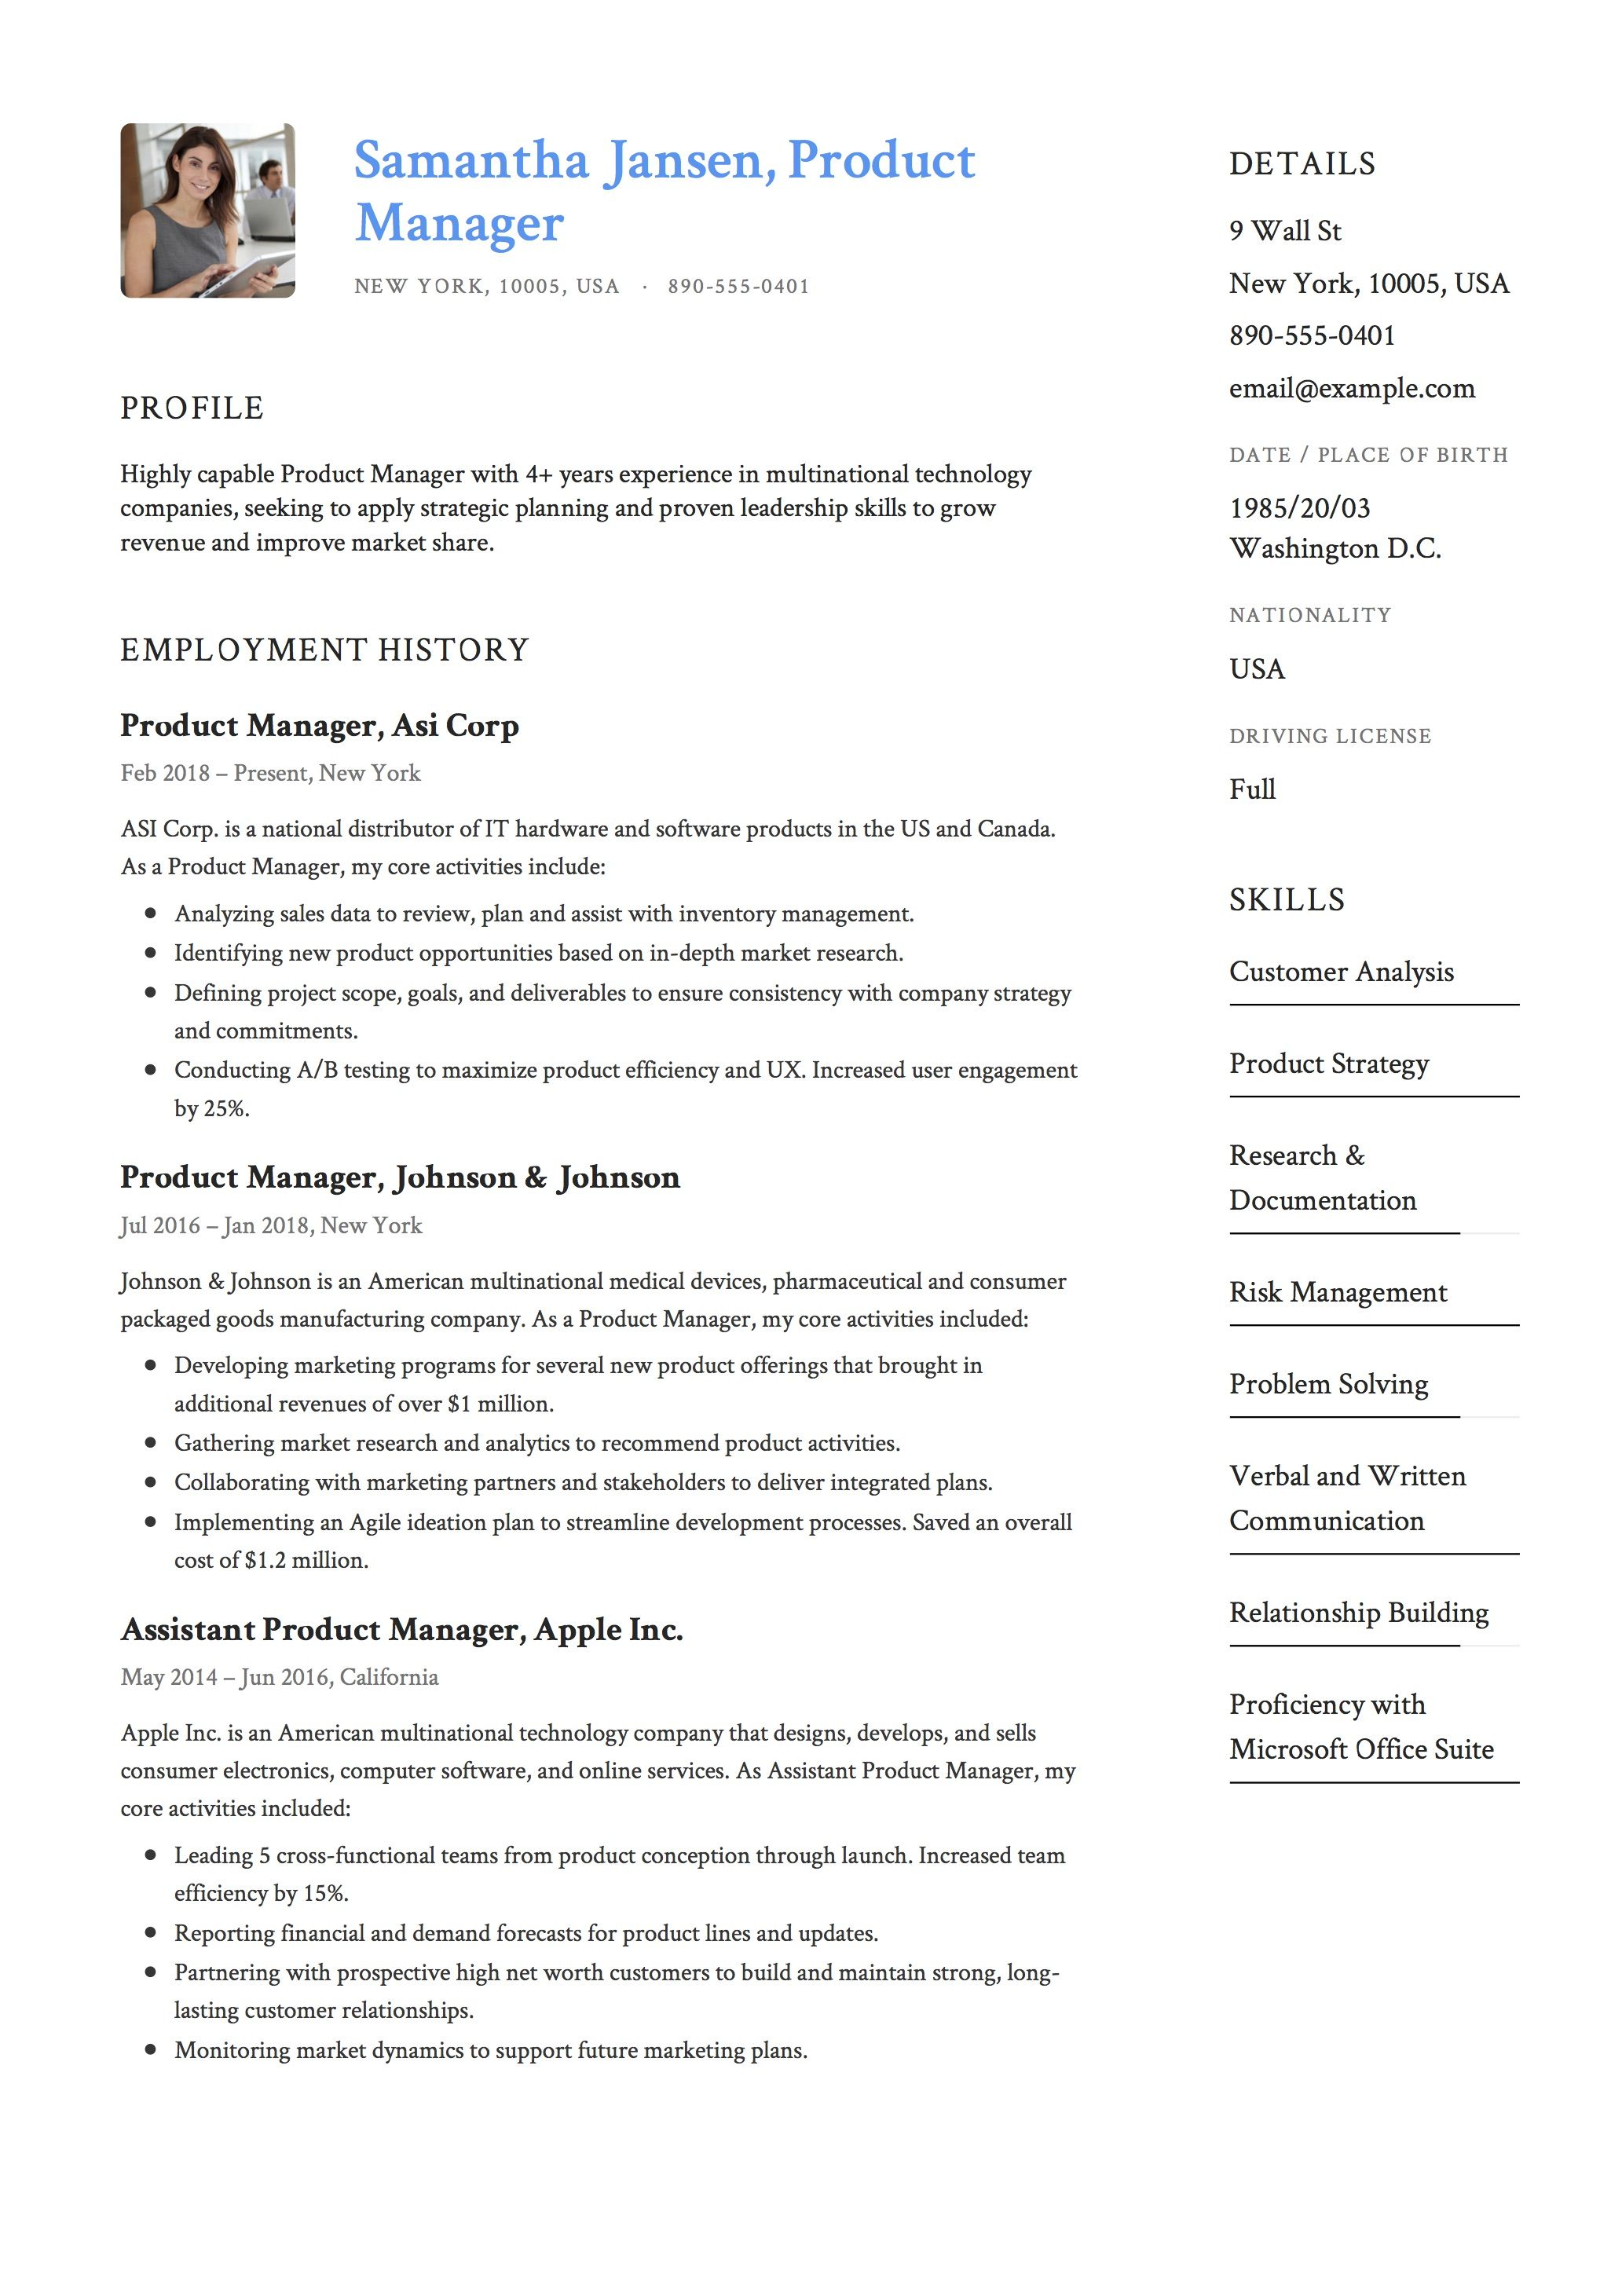 Product Manager Resume Sample Template Example Cv Formal Design Manager Resume Resume Examples Resume Guide